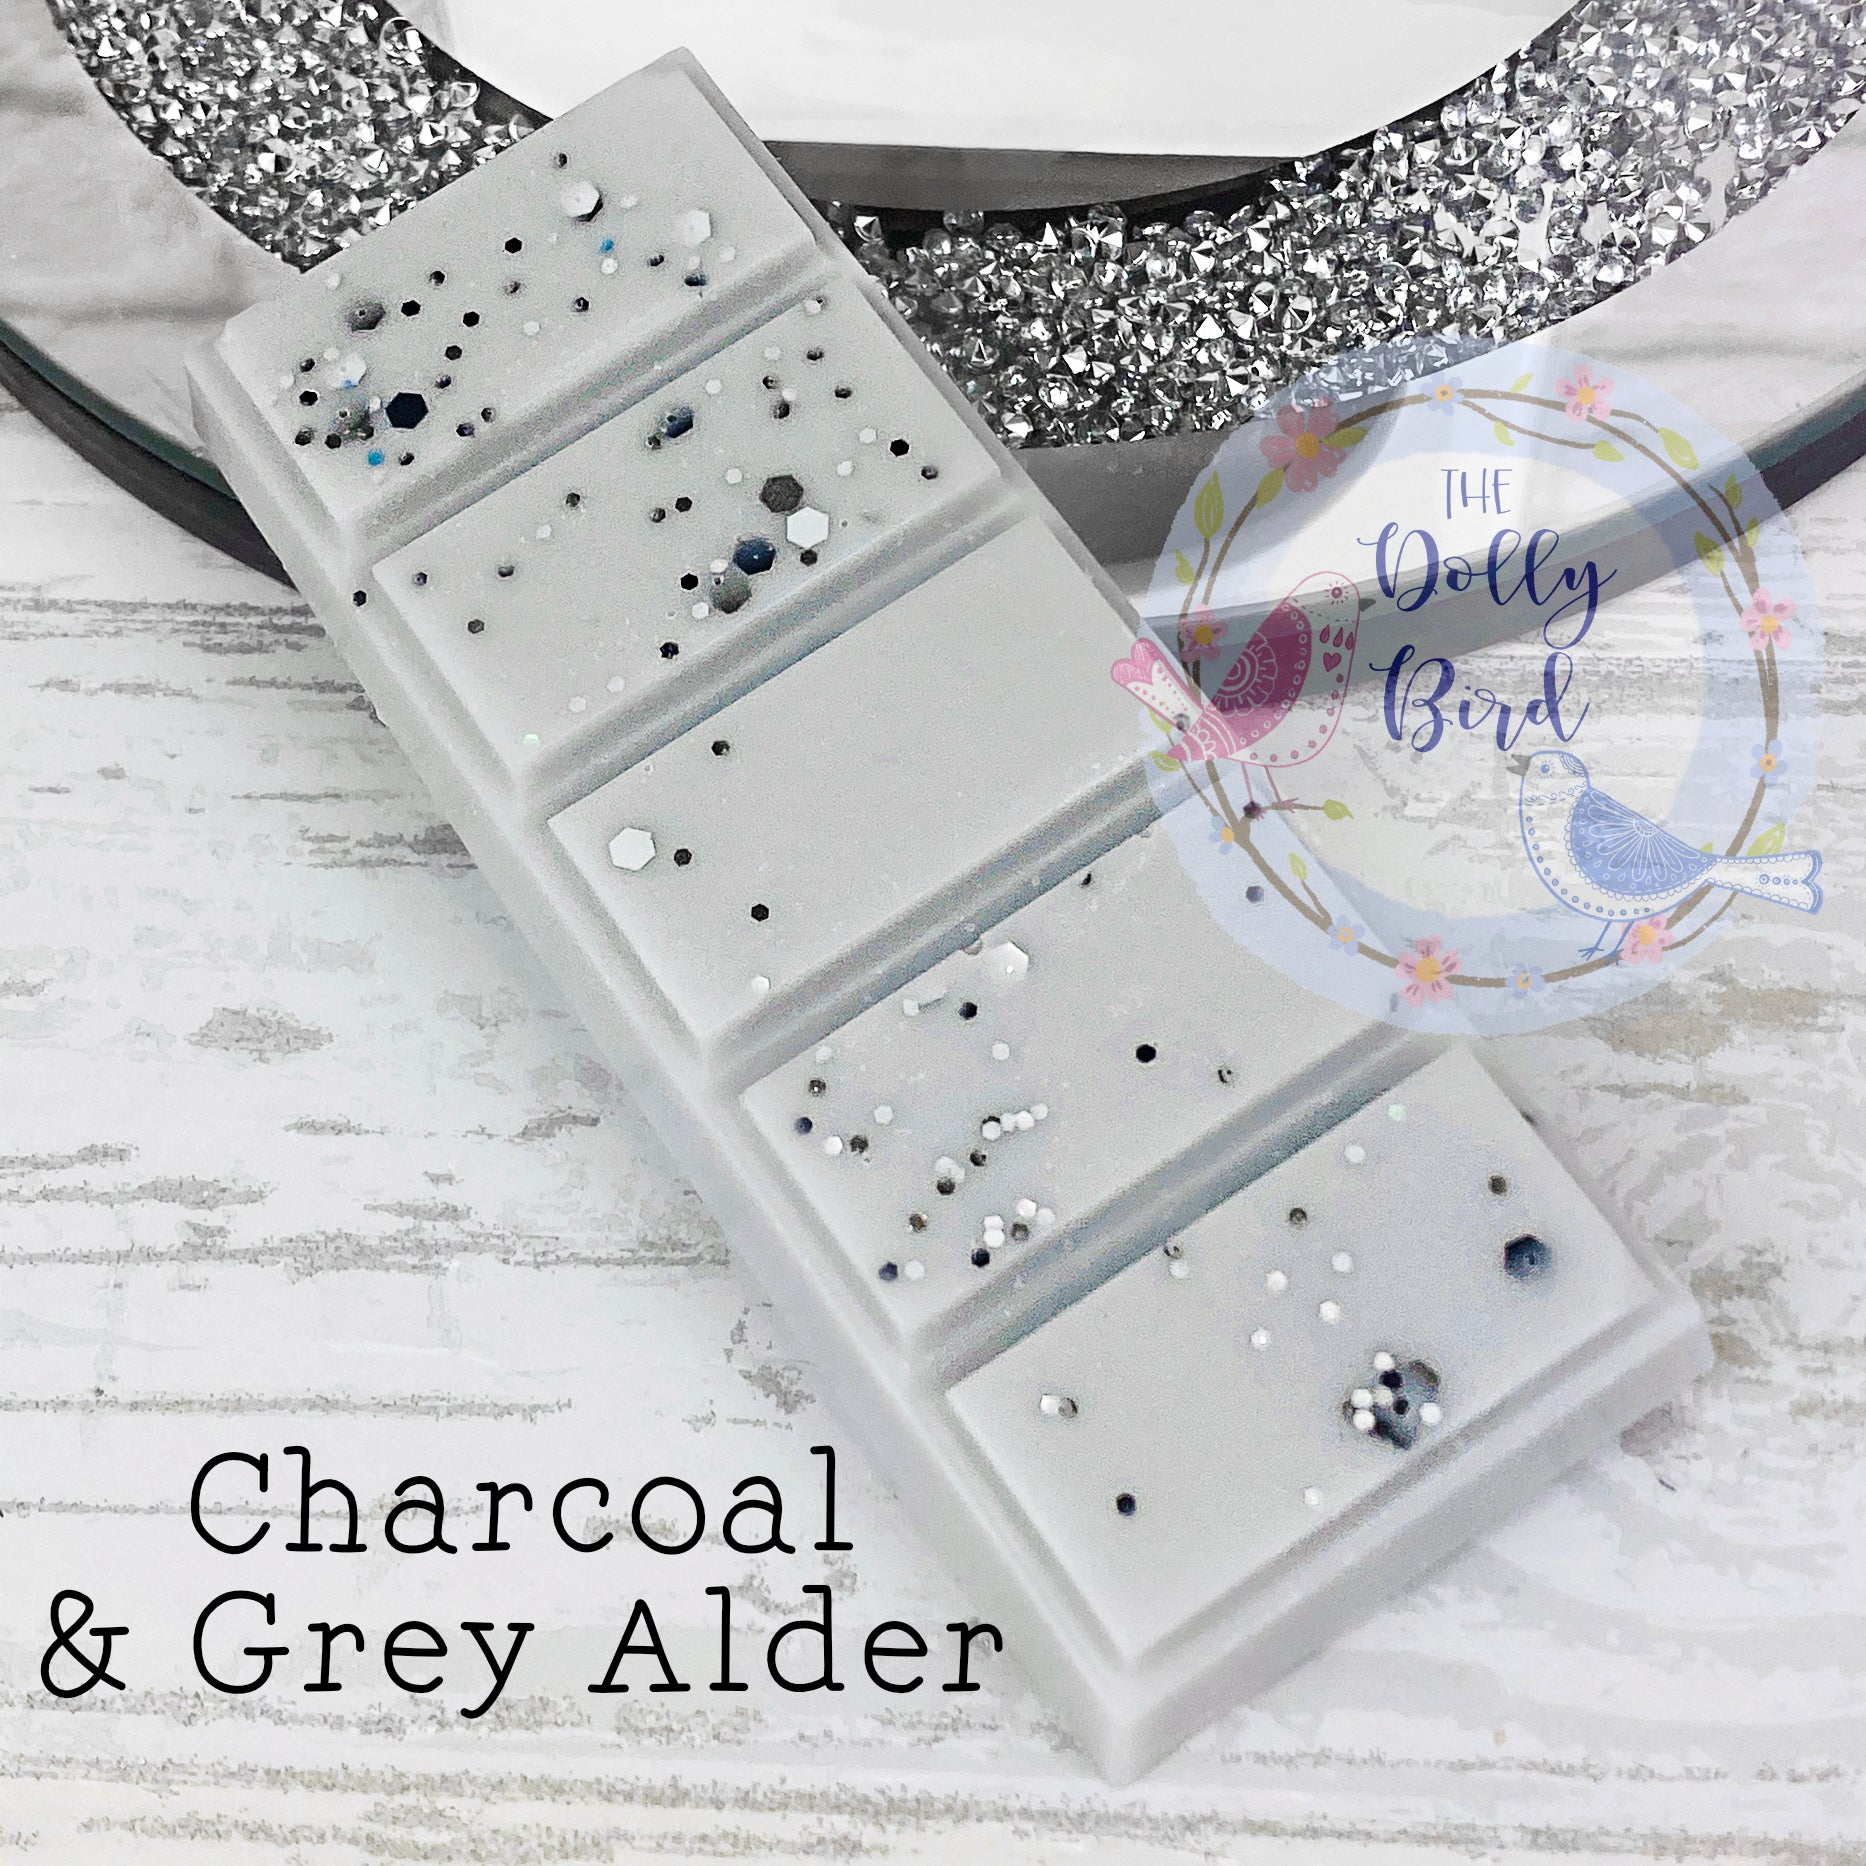 Charcoal And Grey Alder Wax Melt Snap Bar, Musk Scented Wax Melts, Eucalyptus Scented Wax, Clean Scented Wax Melts, Fresh Scent Wax Melts